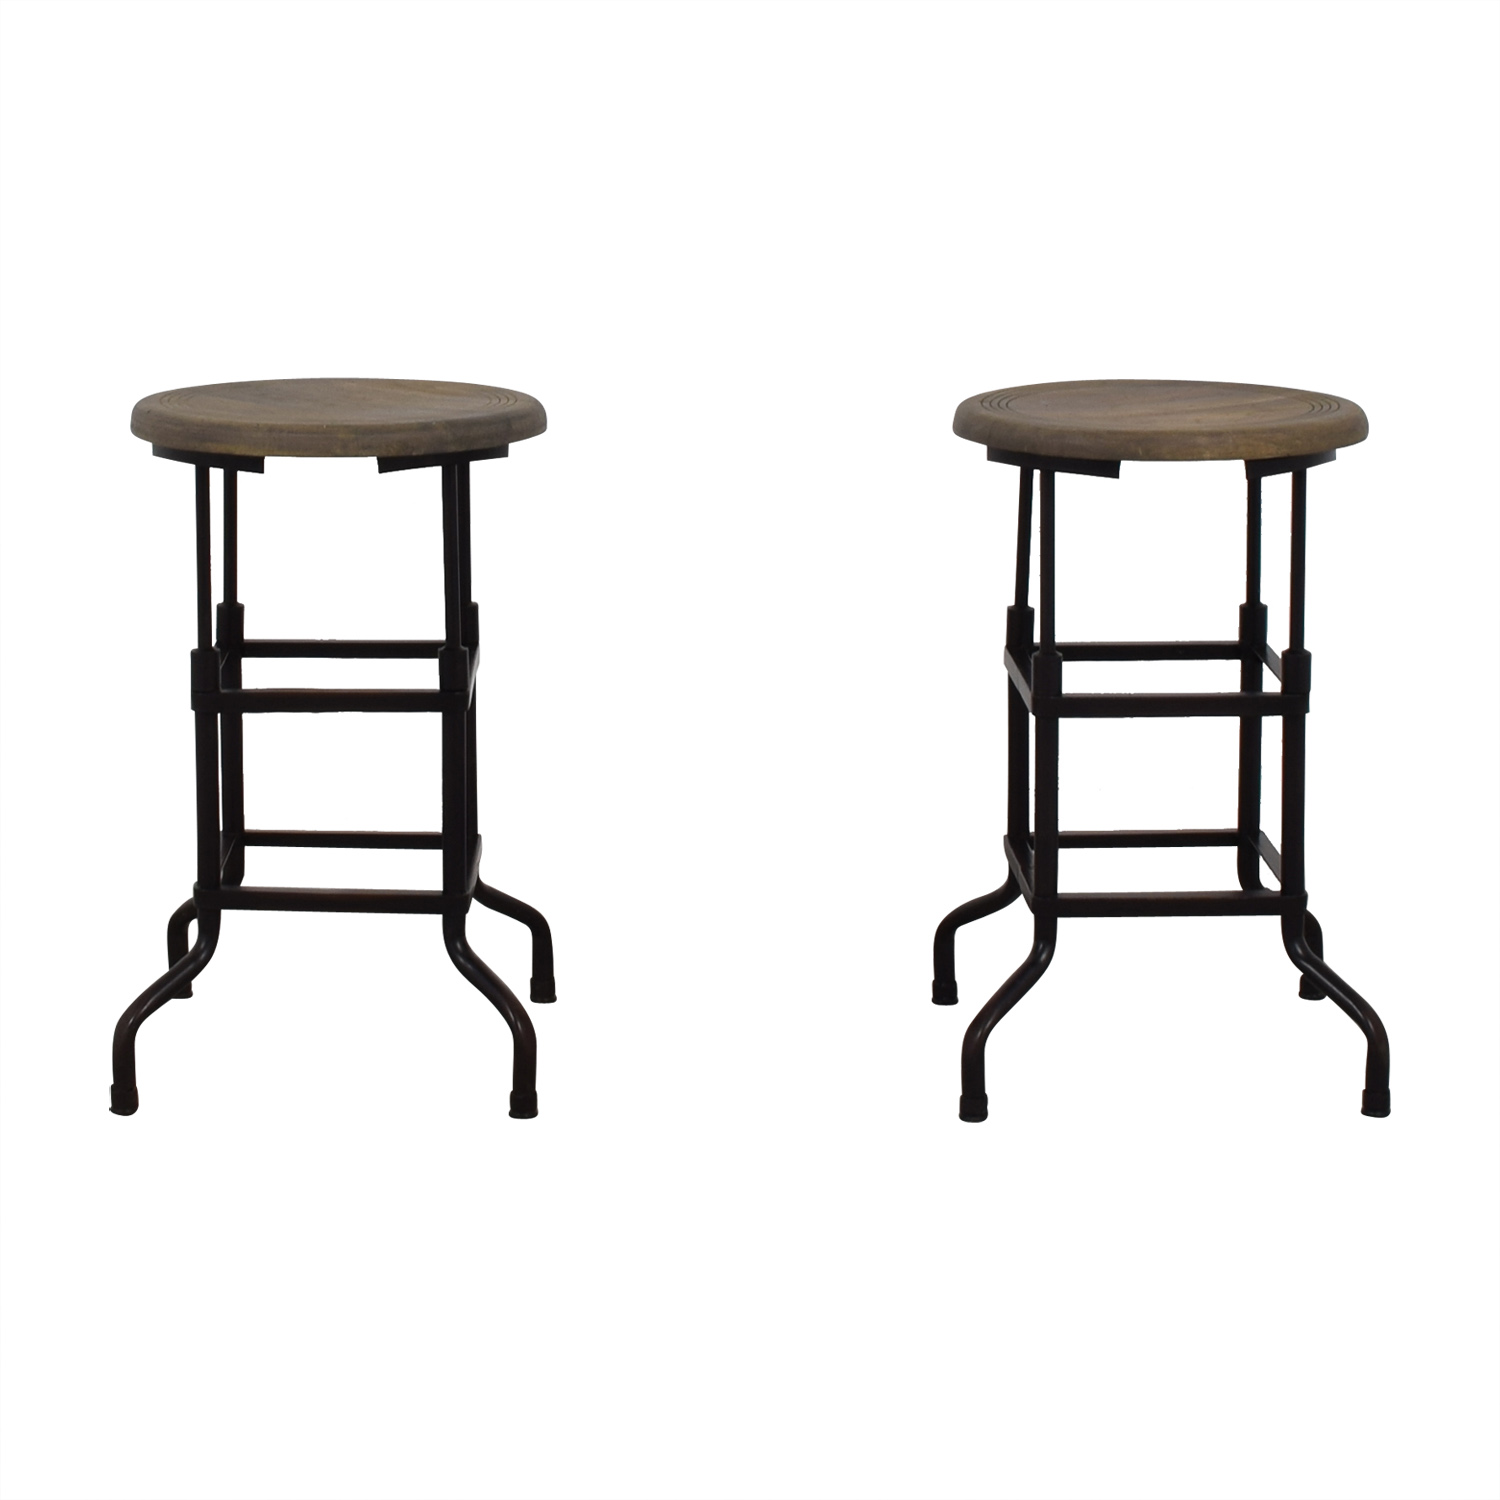 Restoration Hardware Restoration Hardware 1920s American Factory Stools dimensions